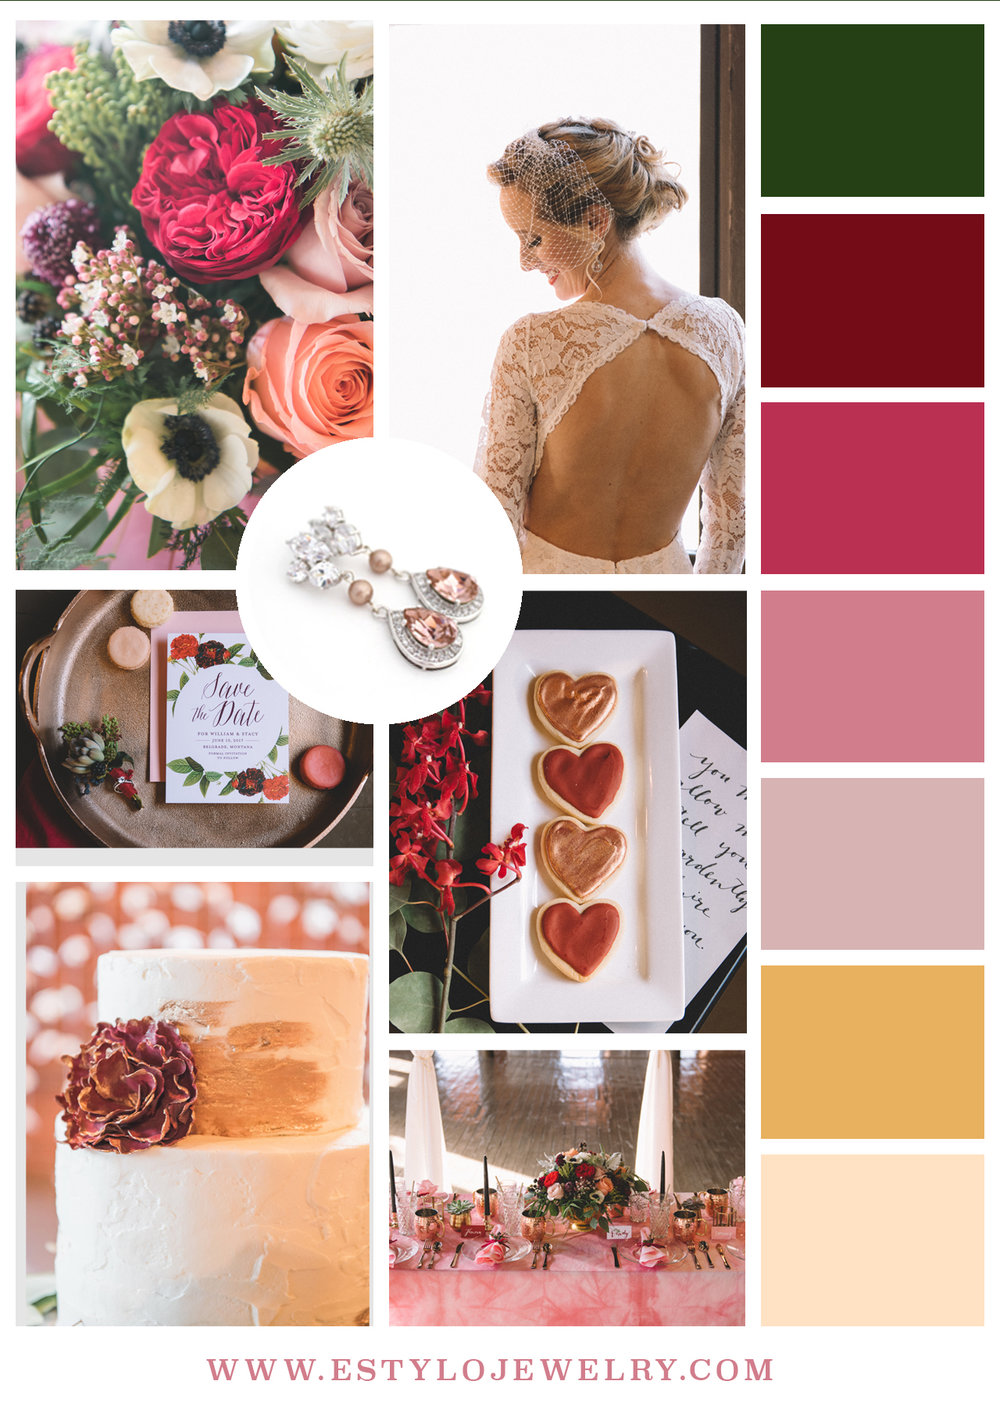 Valentine's Inspired Wedding Shoot in berry colors, pink and mustard.